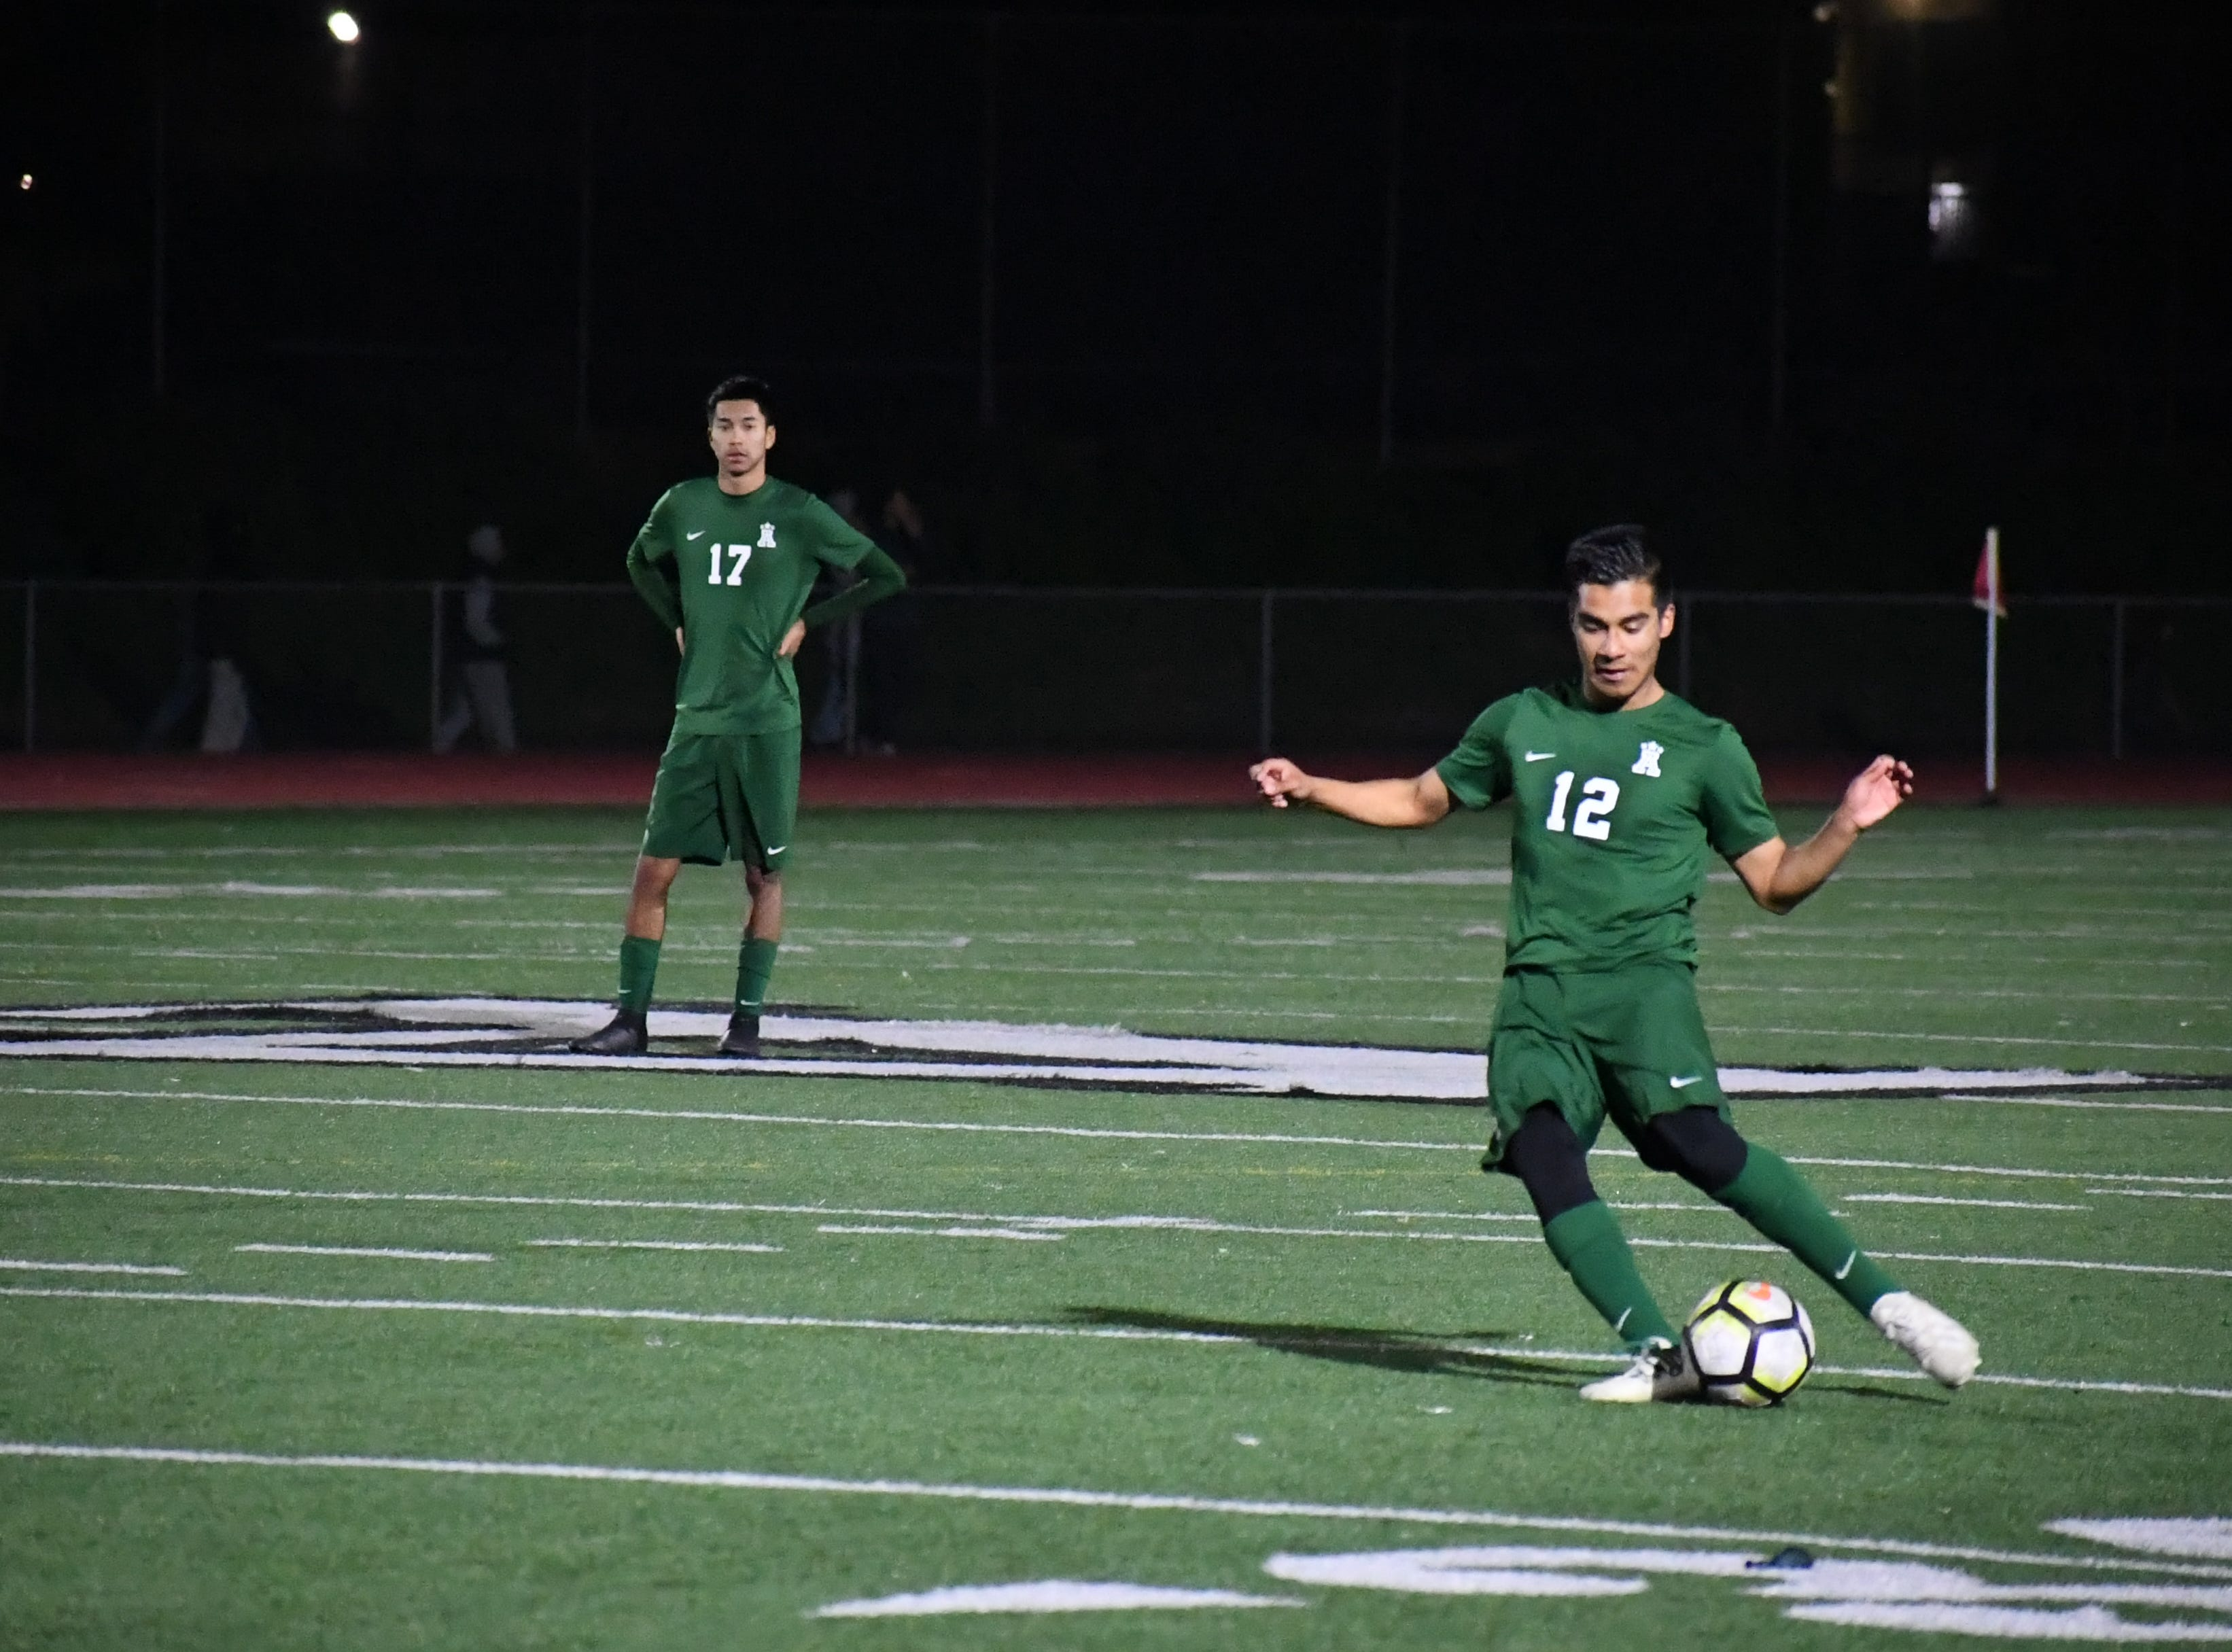 Alisal midfielder Jesus Gregorio (12) fires a pass near the box.